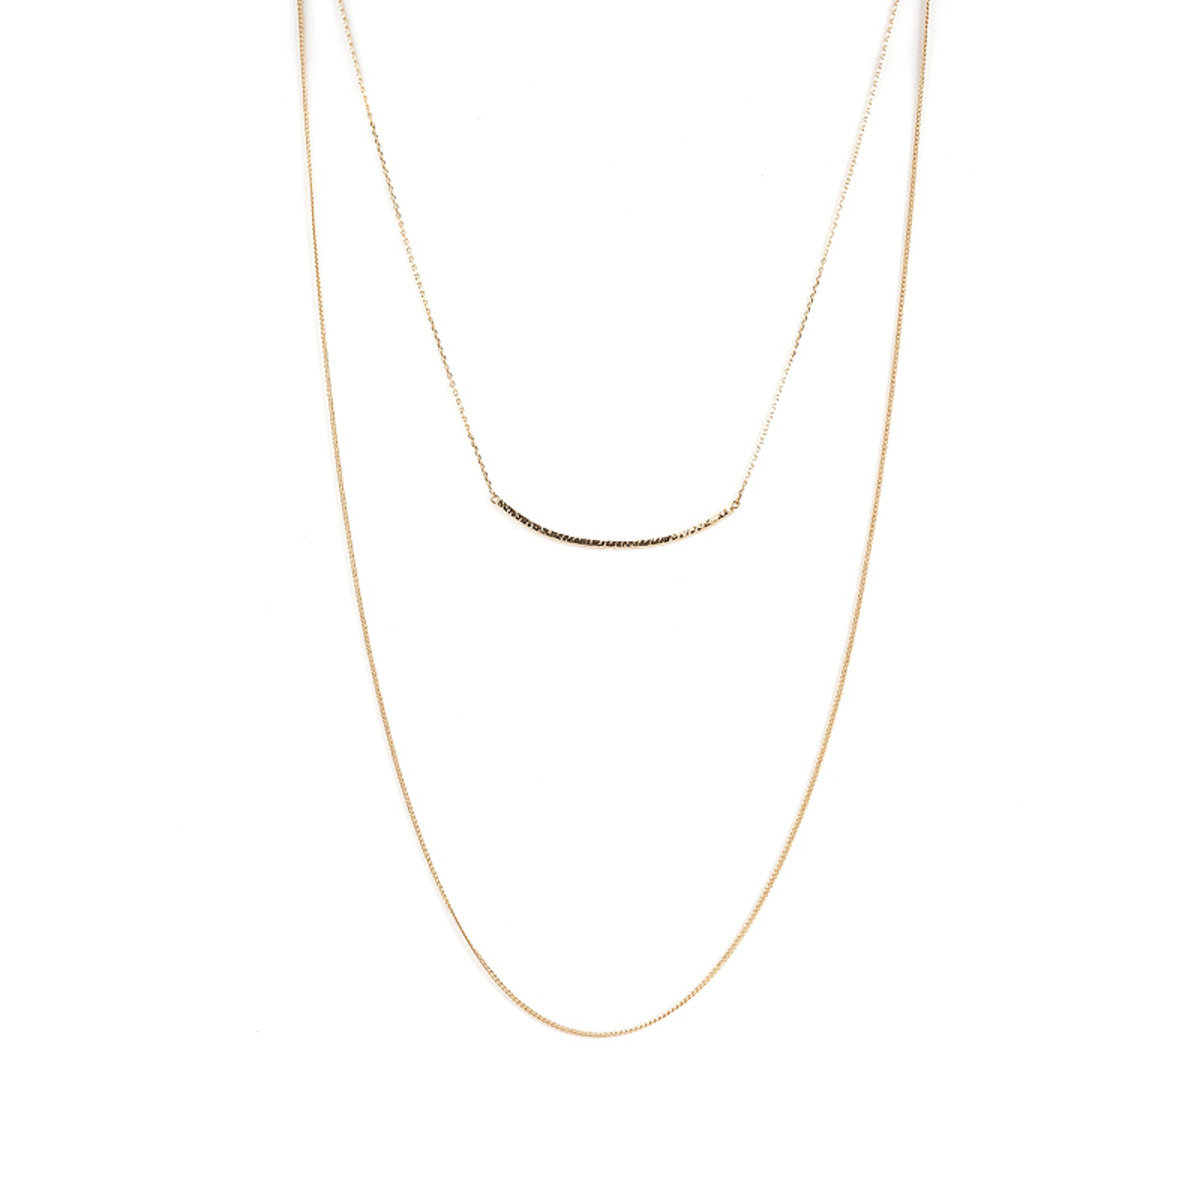 Tresor necklace